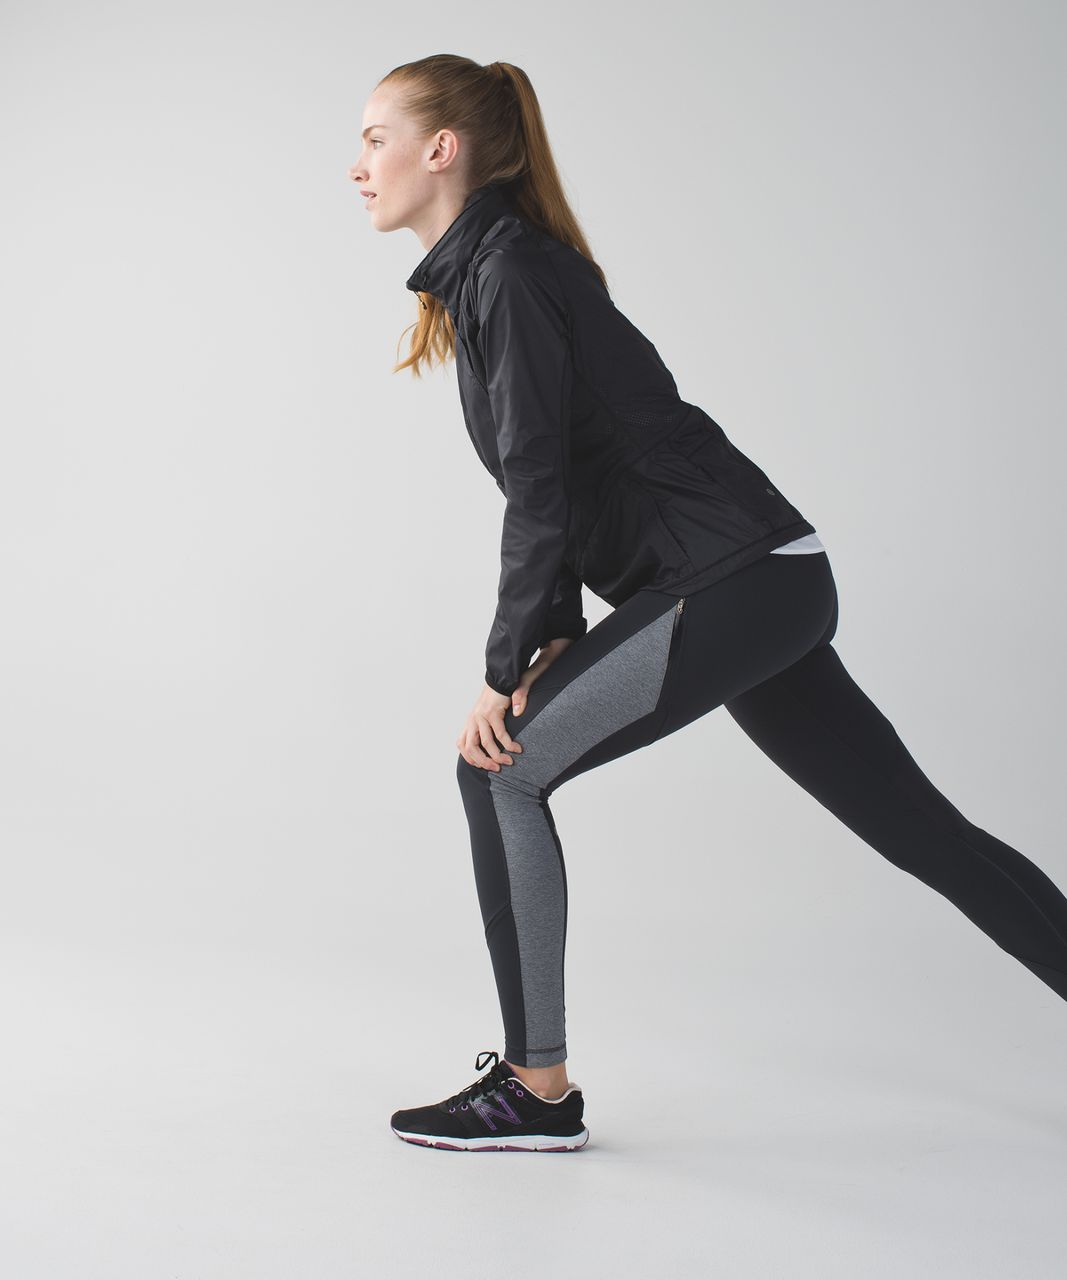 Lululemon Rain-On Train-On Tight - Deep Coal / Heathered Slate